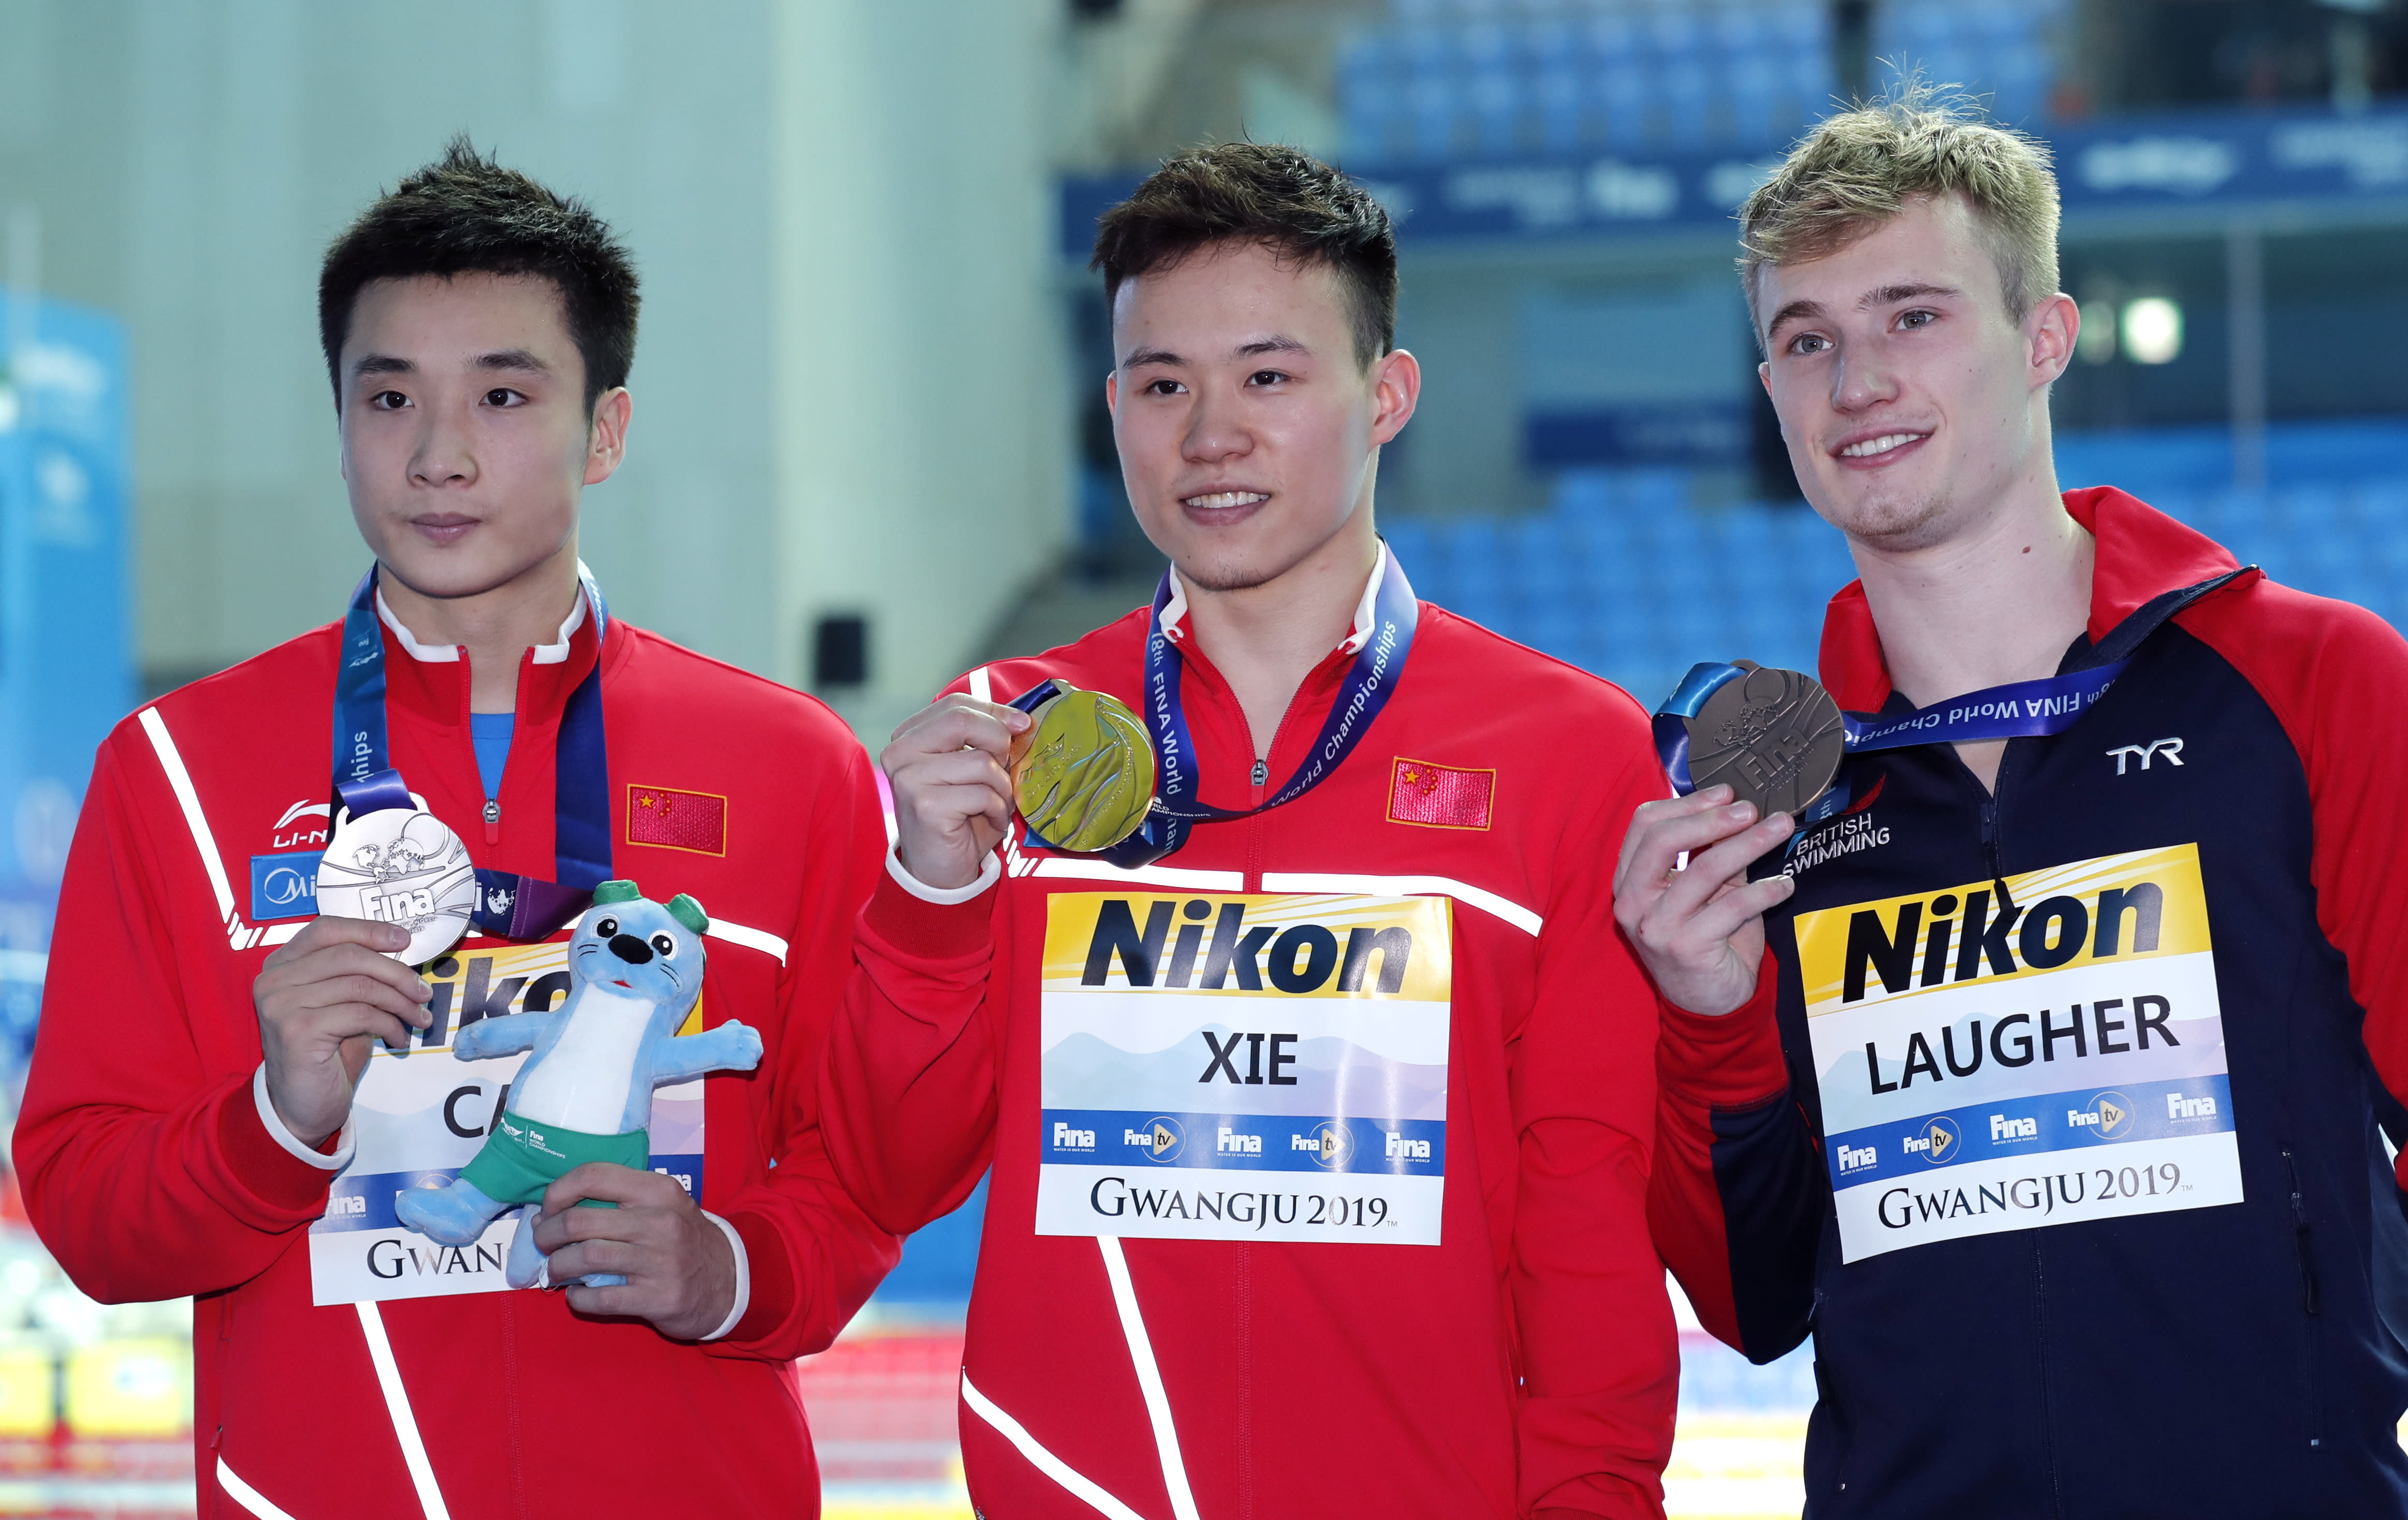 After being second until the last round of the semifinals, xie siyi (chn) then performed an outstanding forward 4 ½ somersaults (tuck), scoring 100.70 and finishing first, ahead of his teammate wang zongyuan. Xie wins 3-meter springboard gold after Laugher falters